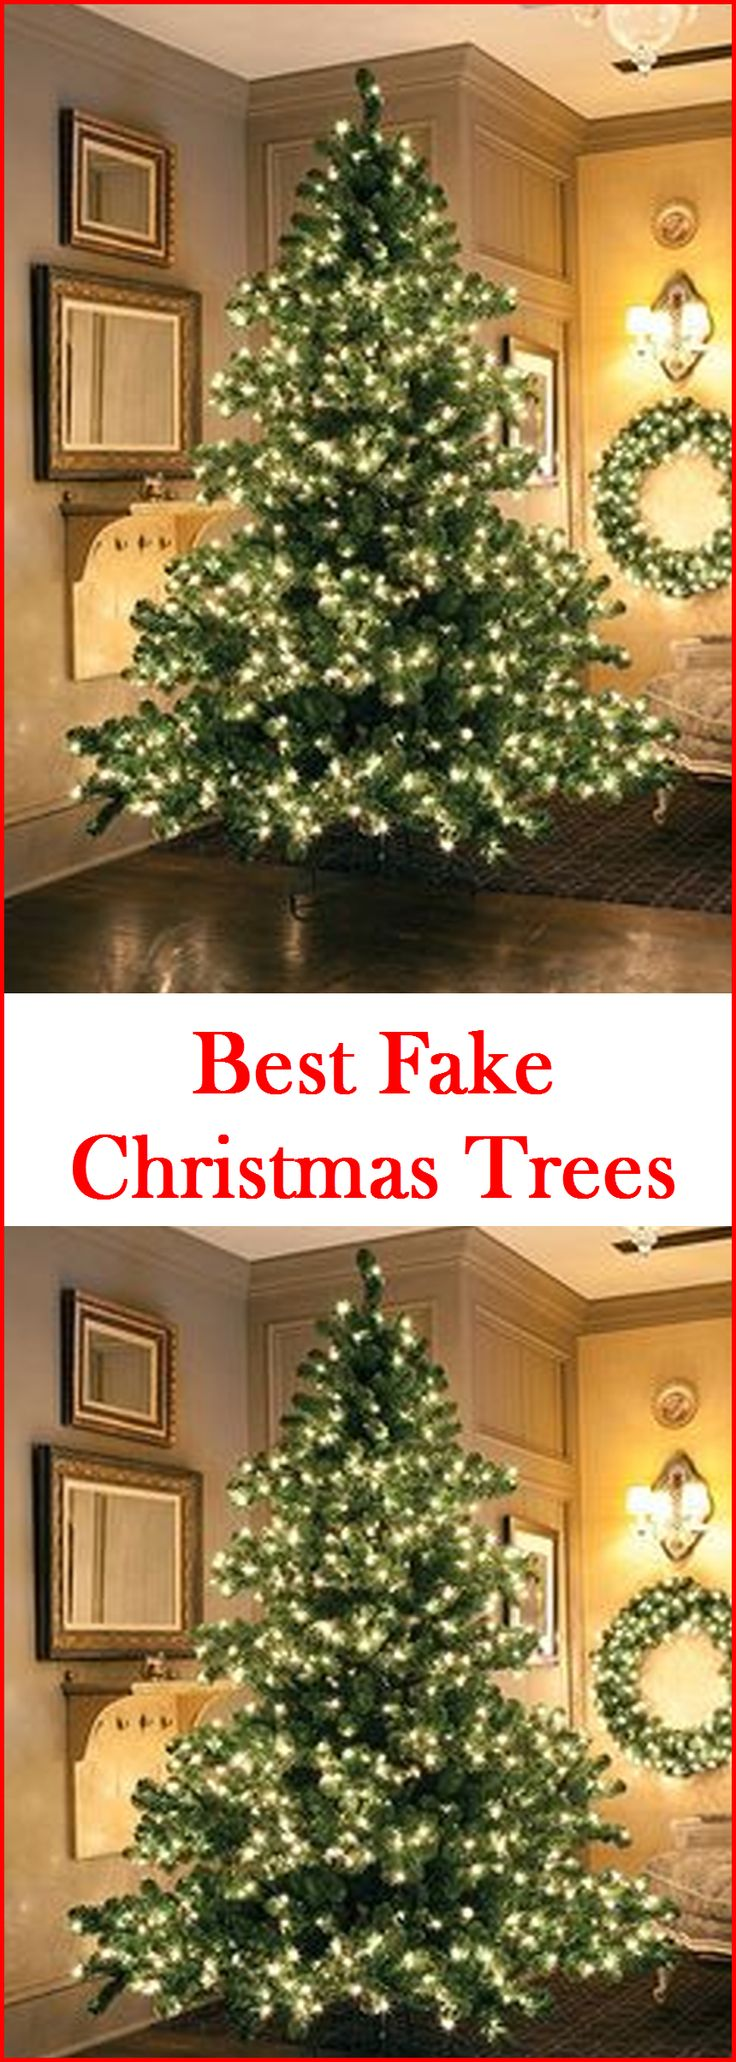 best fake christmas trees that look real - Large Artificial Christmas Trees